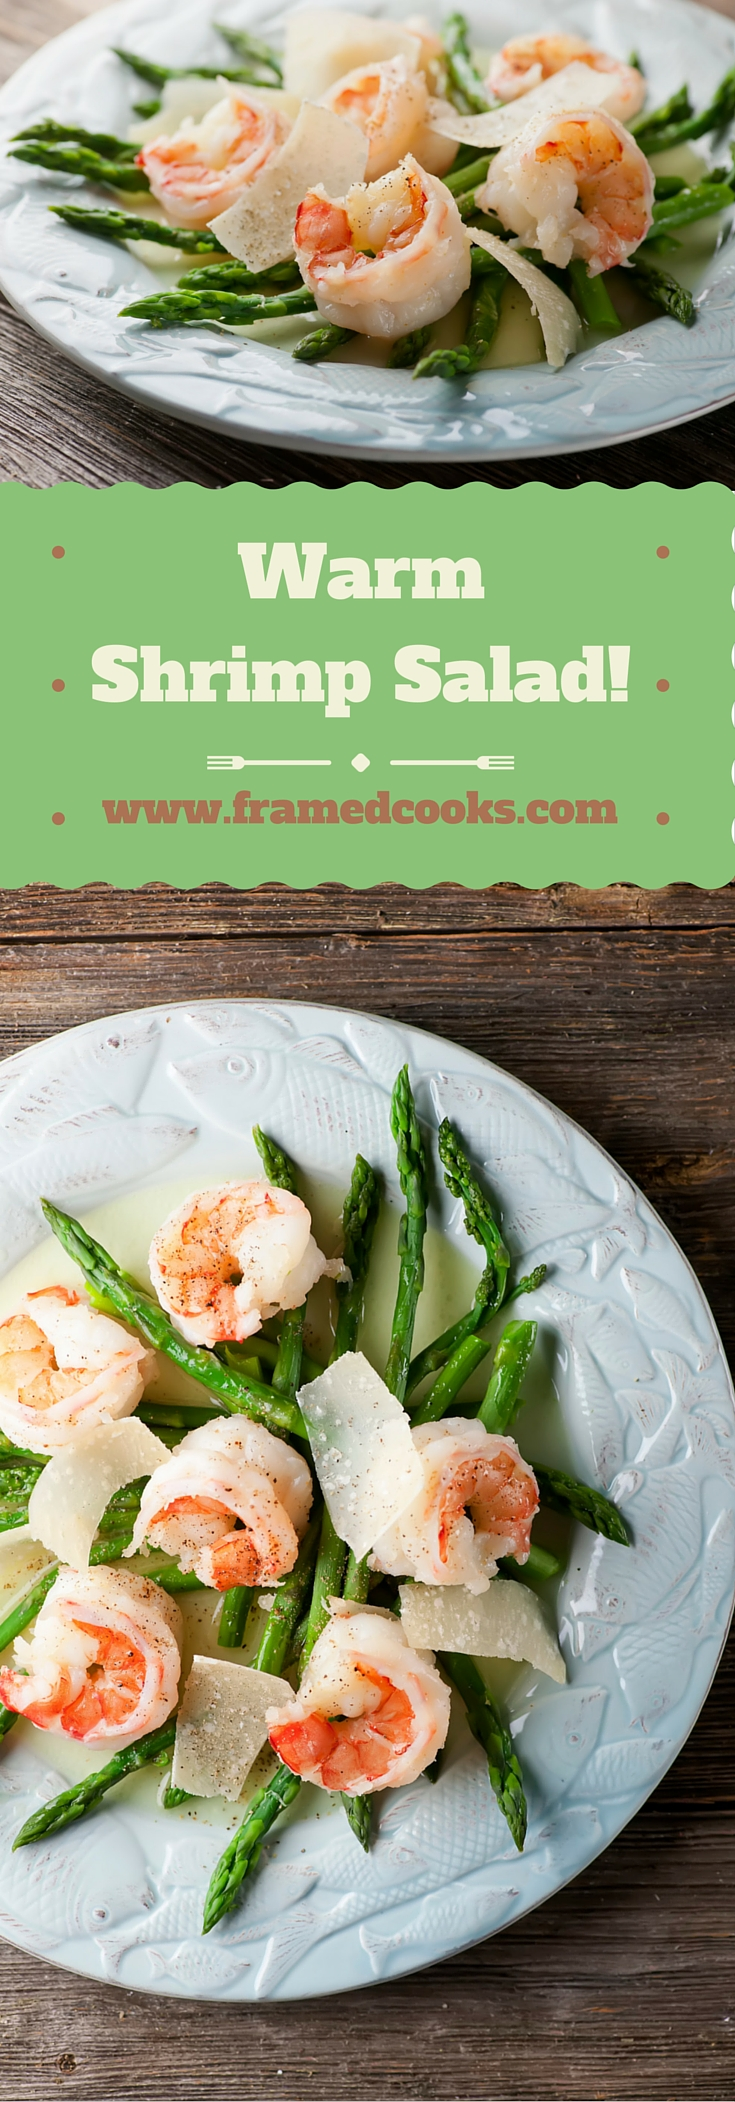 This easy recipe for warm shrimp salad is the perfect light lunch or dinner.  Let's hear it for salad season!